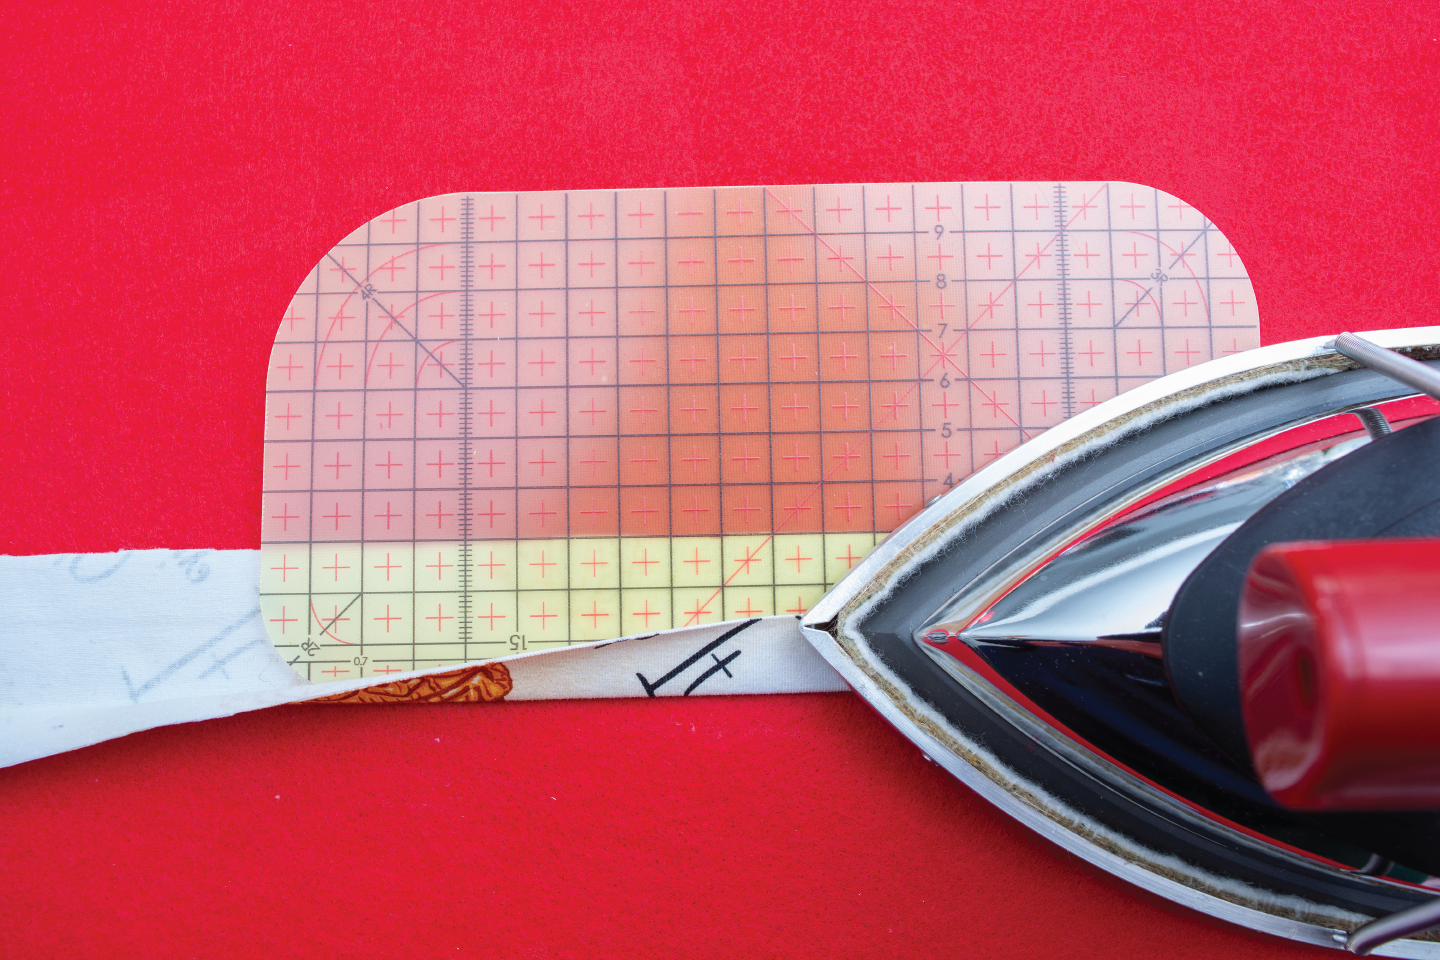 hot iron ruler being used on binding with an iron on a red background